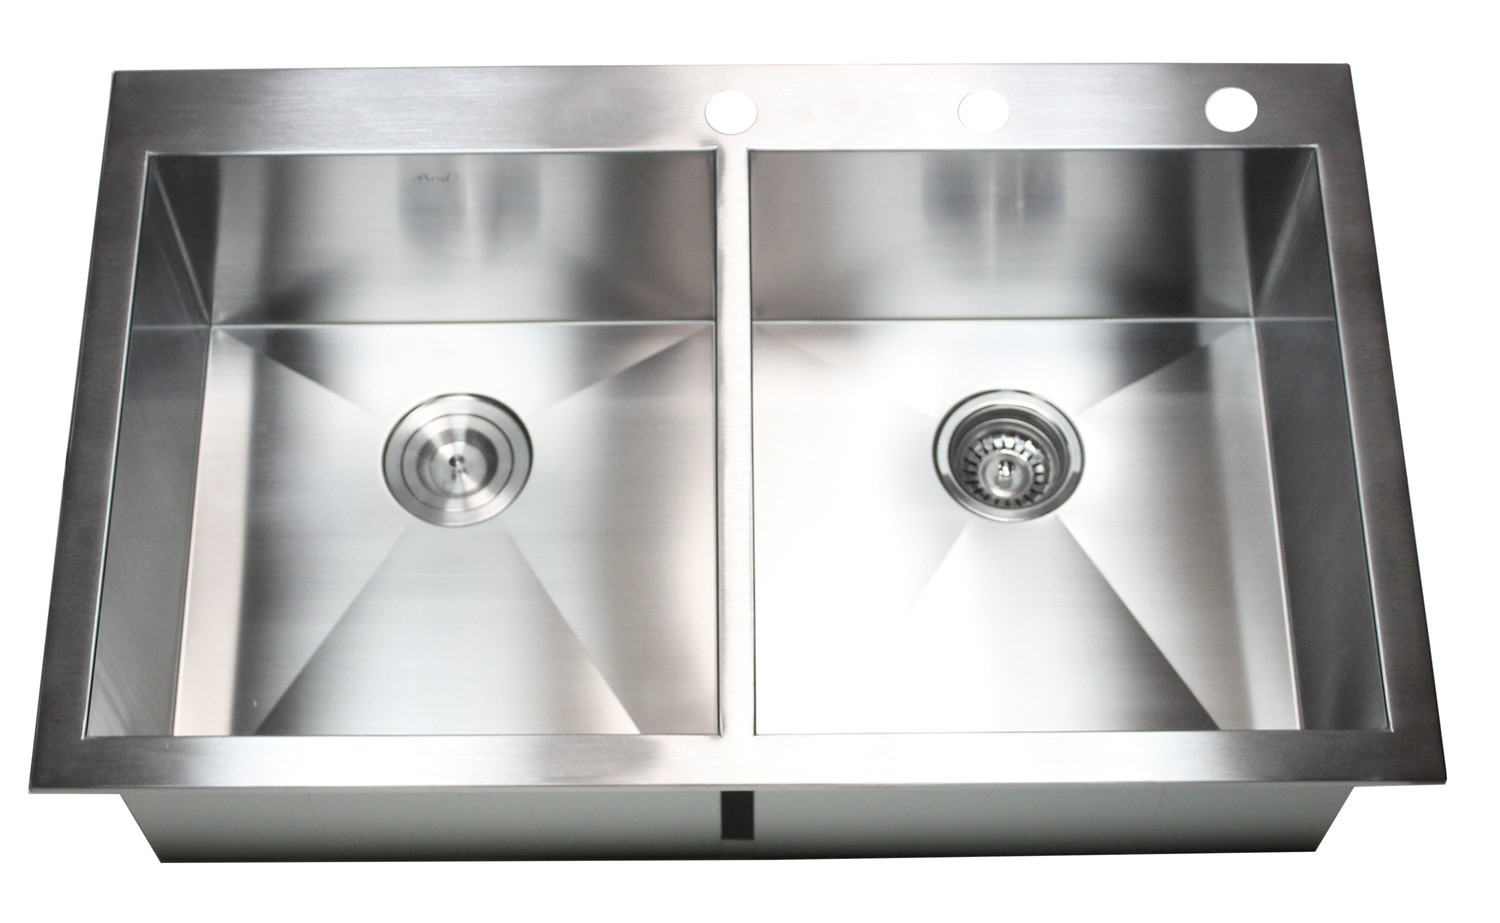 36 inch top mount   drop in stainless steel double bowl kitchen sink zero radius design 36 inch top mount   drop in stainless steel double bowl kitchen      rh   cbath com